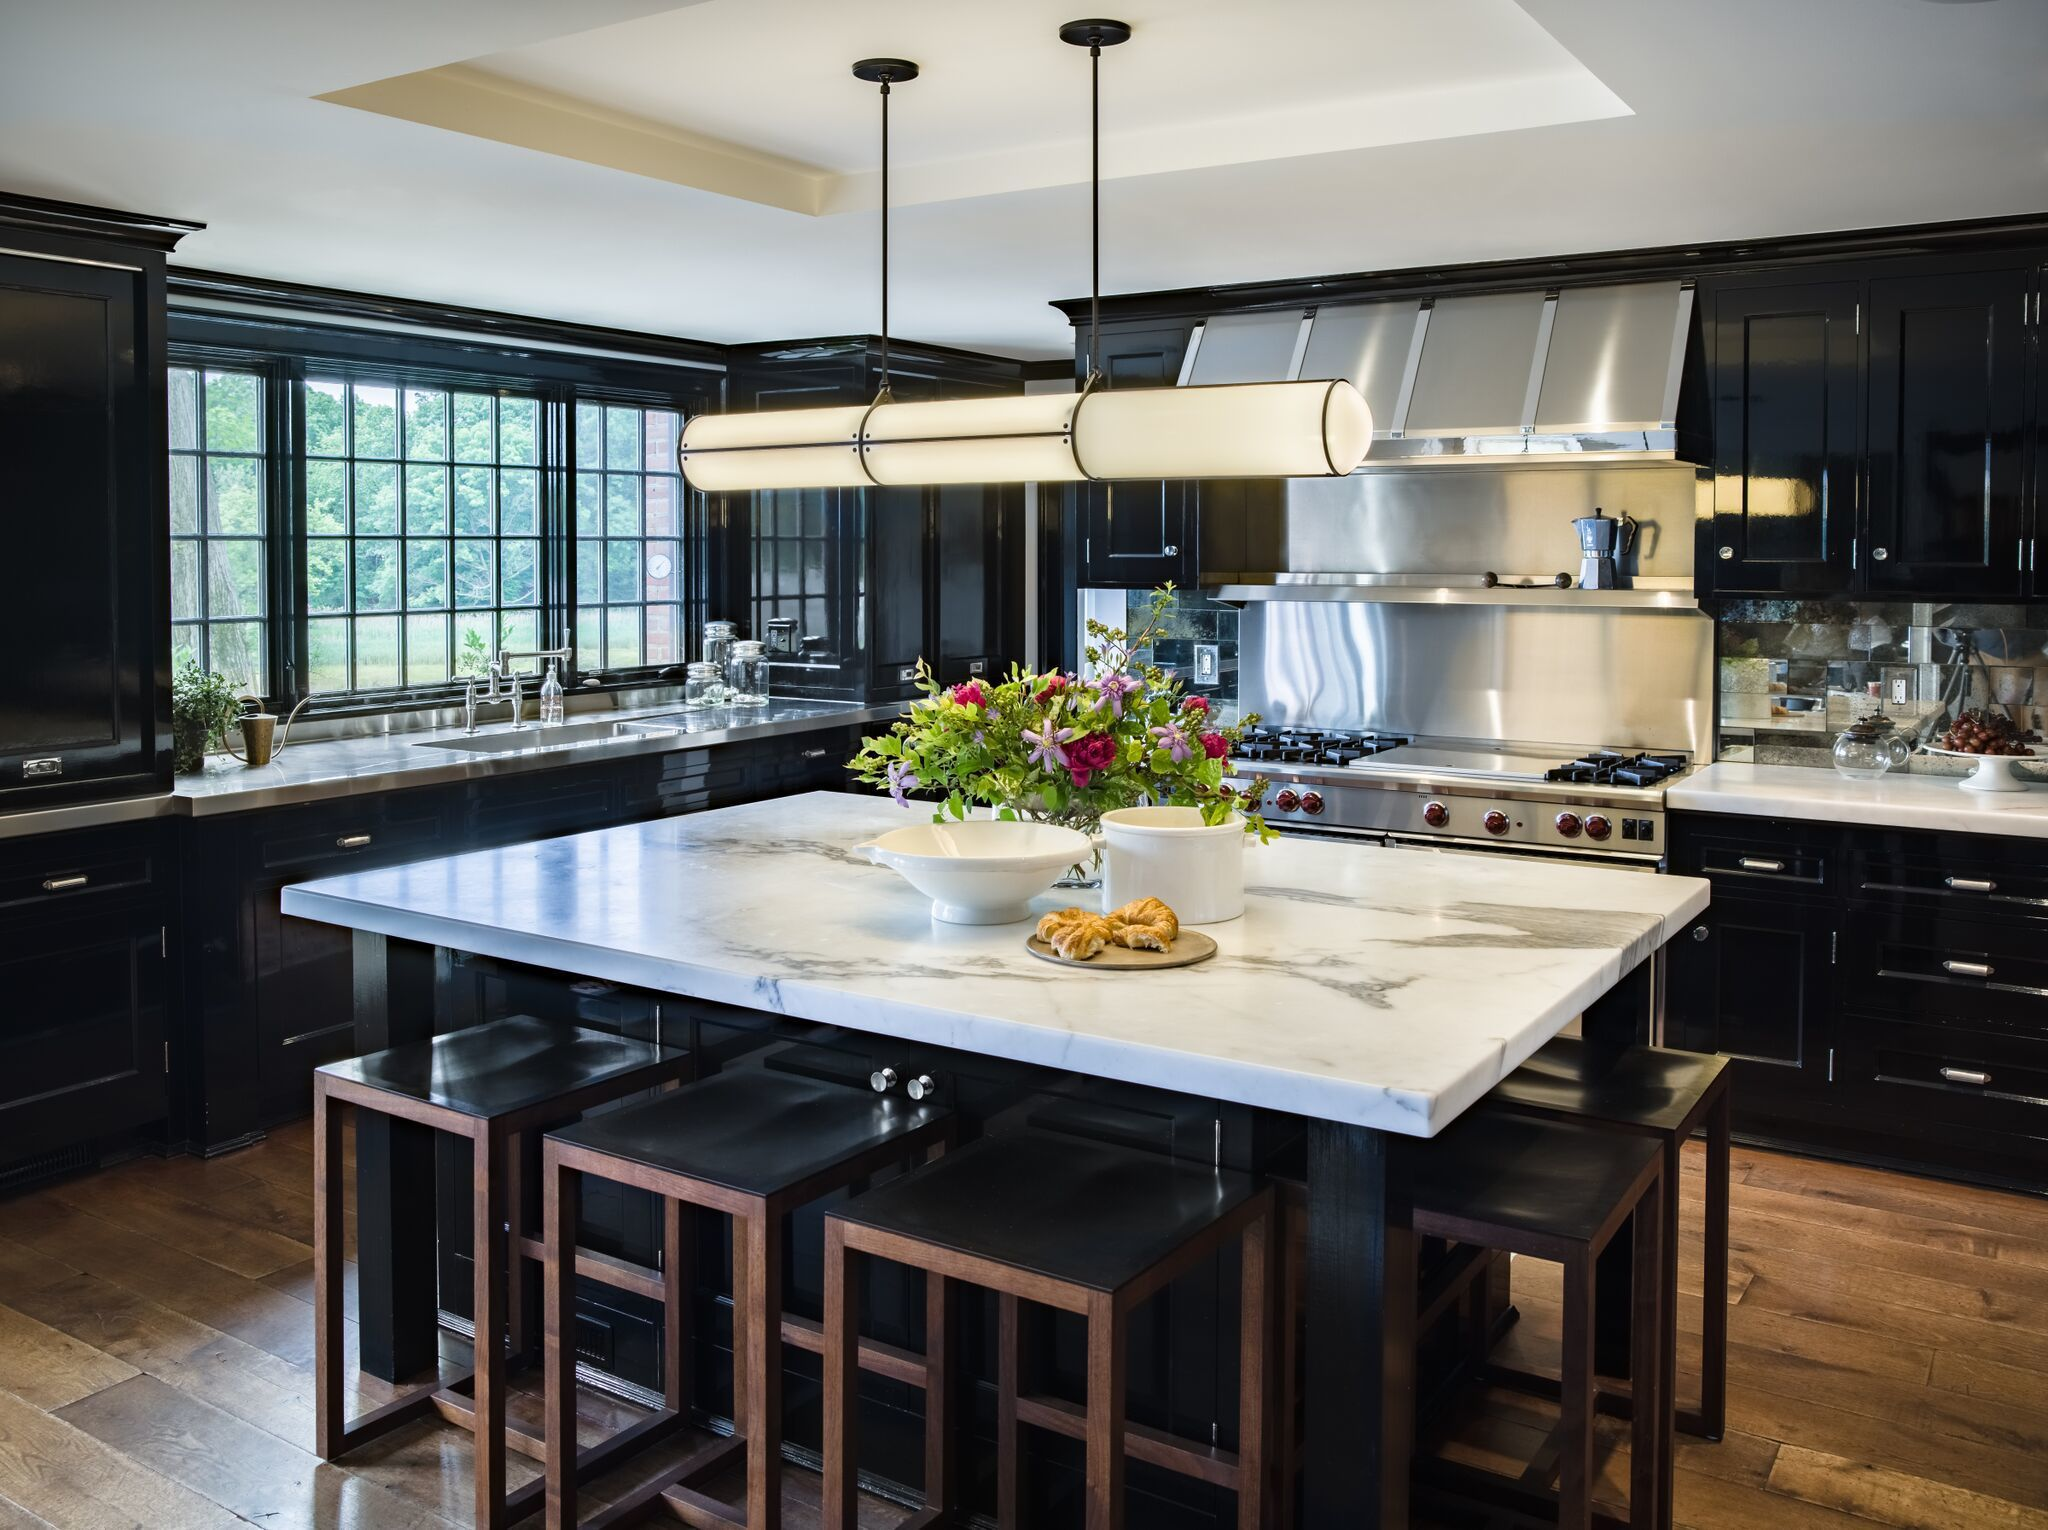 The Attractive Black Kitchen   Cabinets